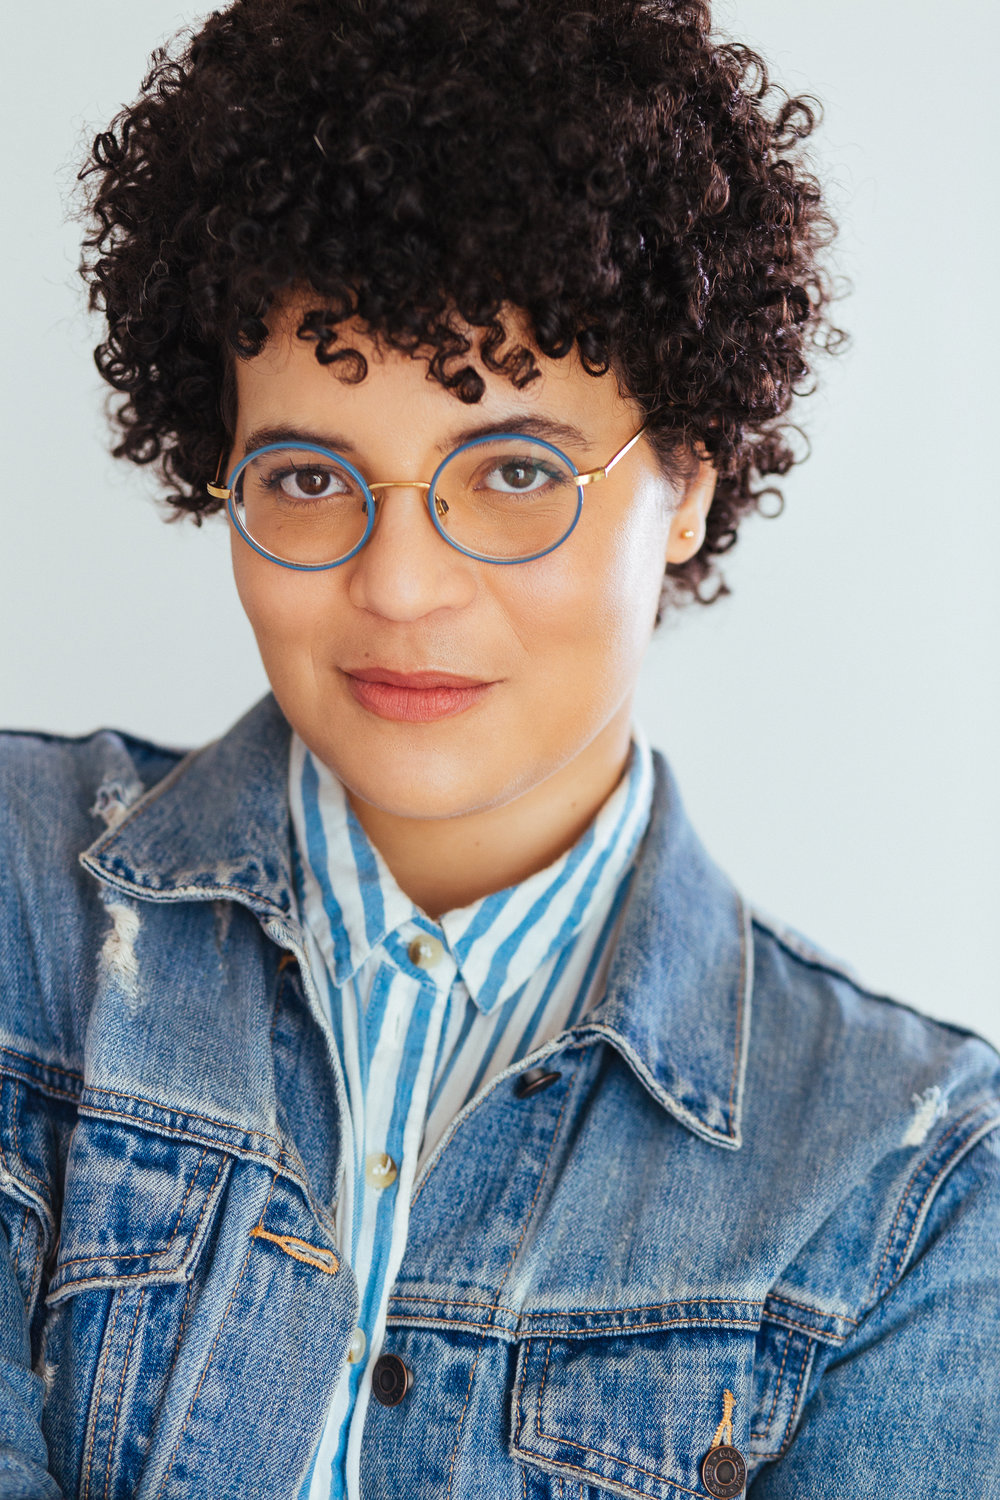 - Nanie is an actor/ improvisor/ writer based in Brooklyn. She has been studying improv since 2013 and has appeared in sketches for The Onion and College Humor. She was a writer/performer for two seasons on the house team Characters Welcome at UCBT. She currently performs monthly at UCBT Hell's Kitchen Maude Night on the sketch team Lake Fire.Nanie also co-hosts an all female variety show called Fly Gurlz at The Magnet Theatre. She was a 2017 NBC/UCBT Diversity Scholarship Finalist and a featured performer at the Cinder Block Comedy Festival. She is a proud member of the HB Ensemble. And a Story Pirates Company member.